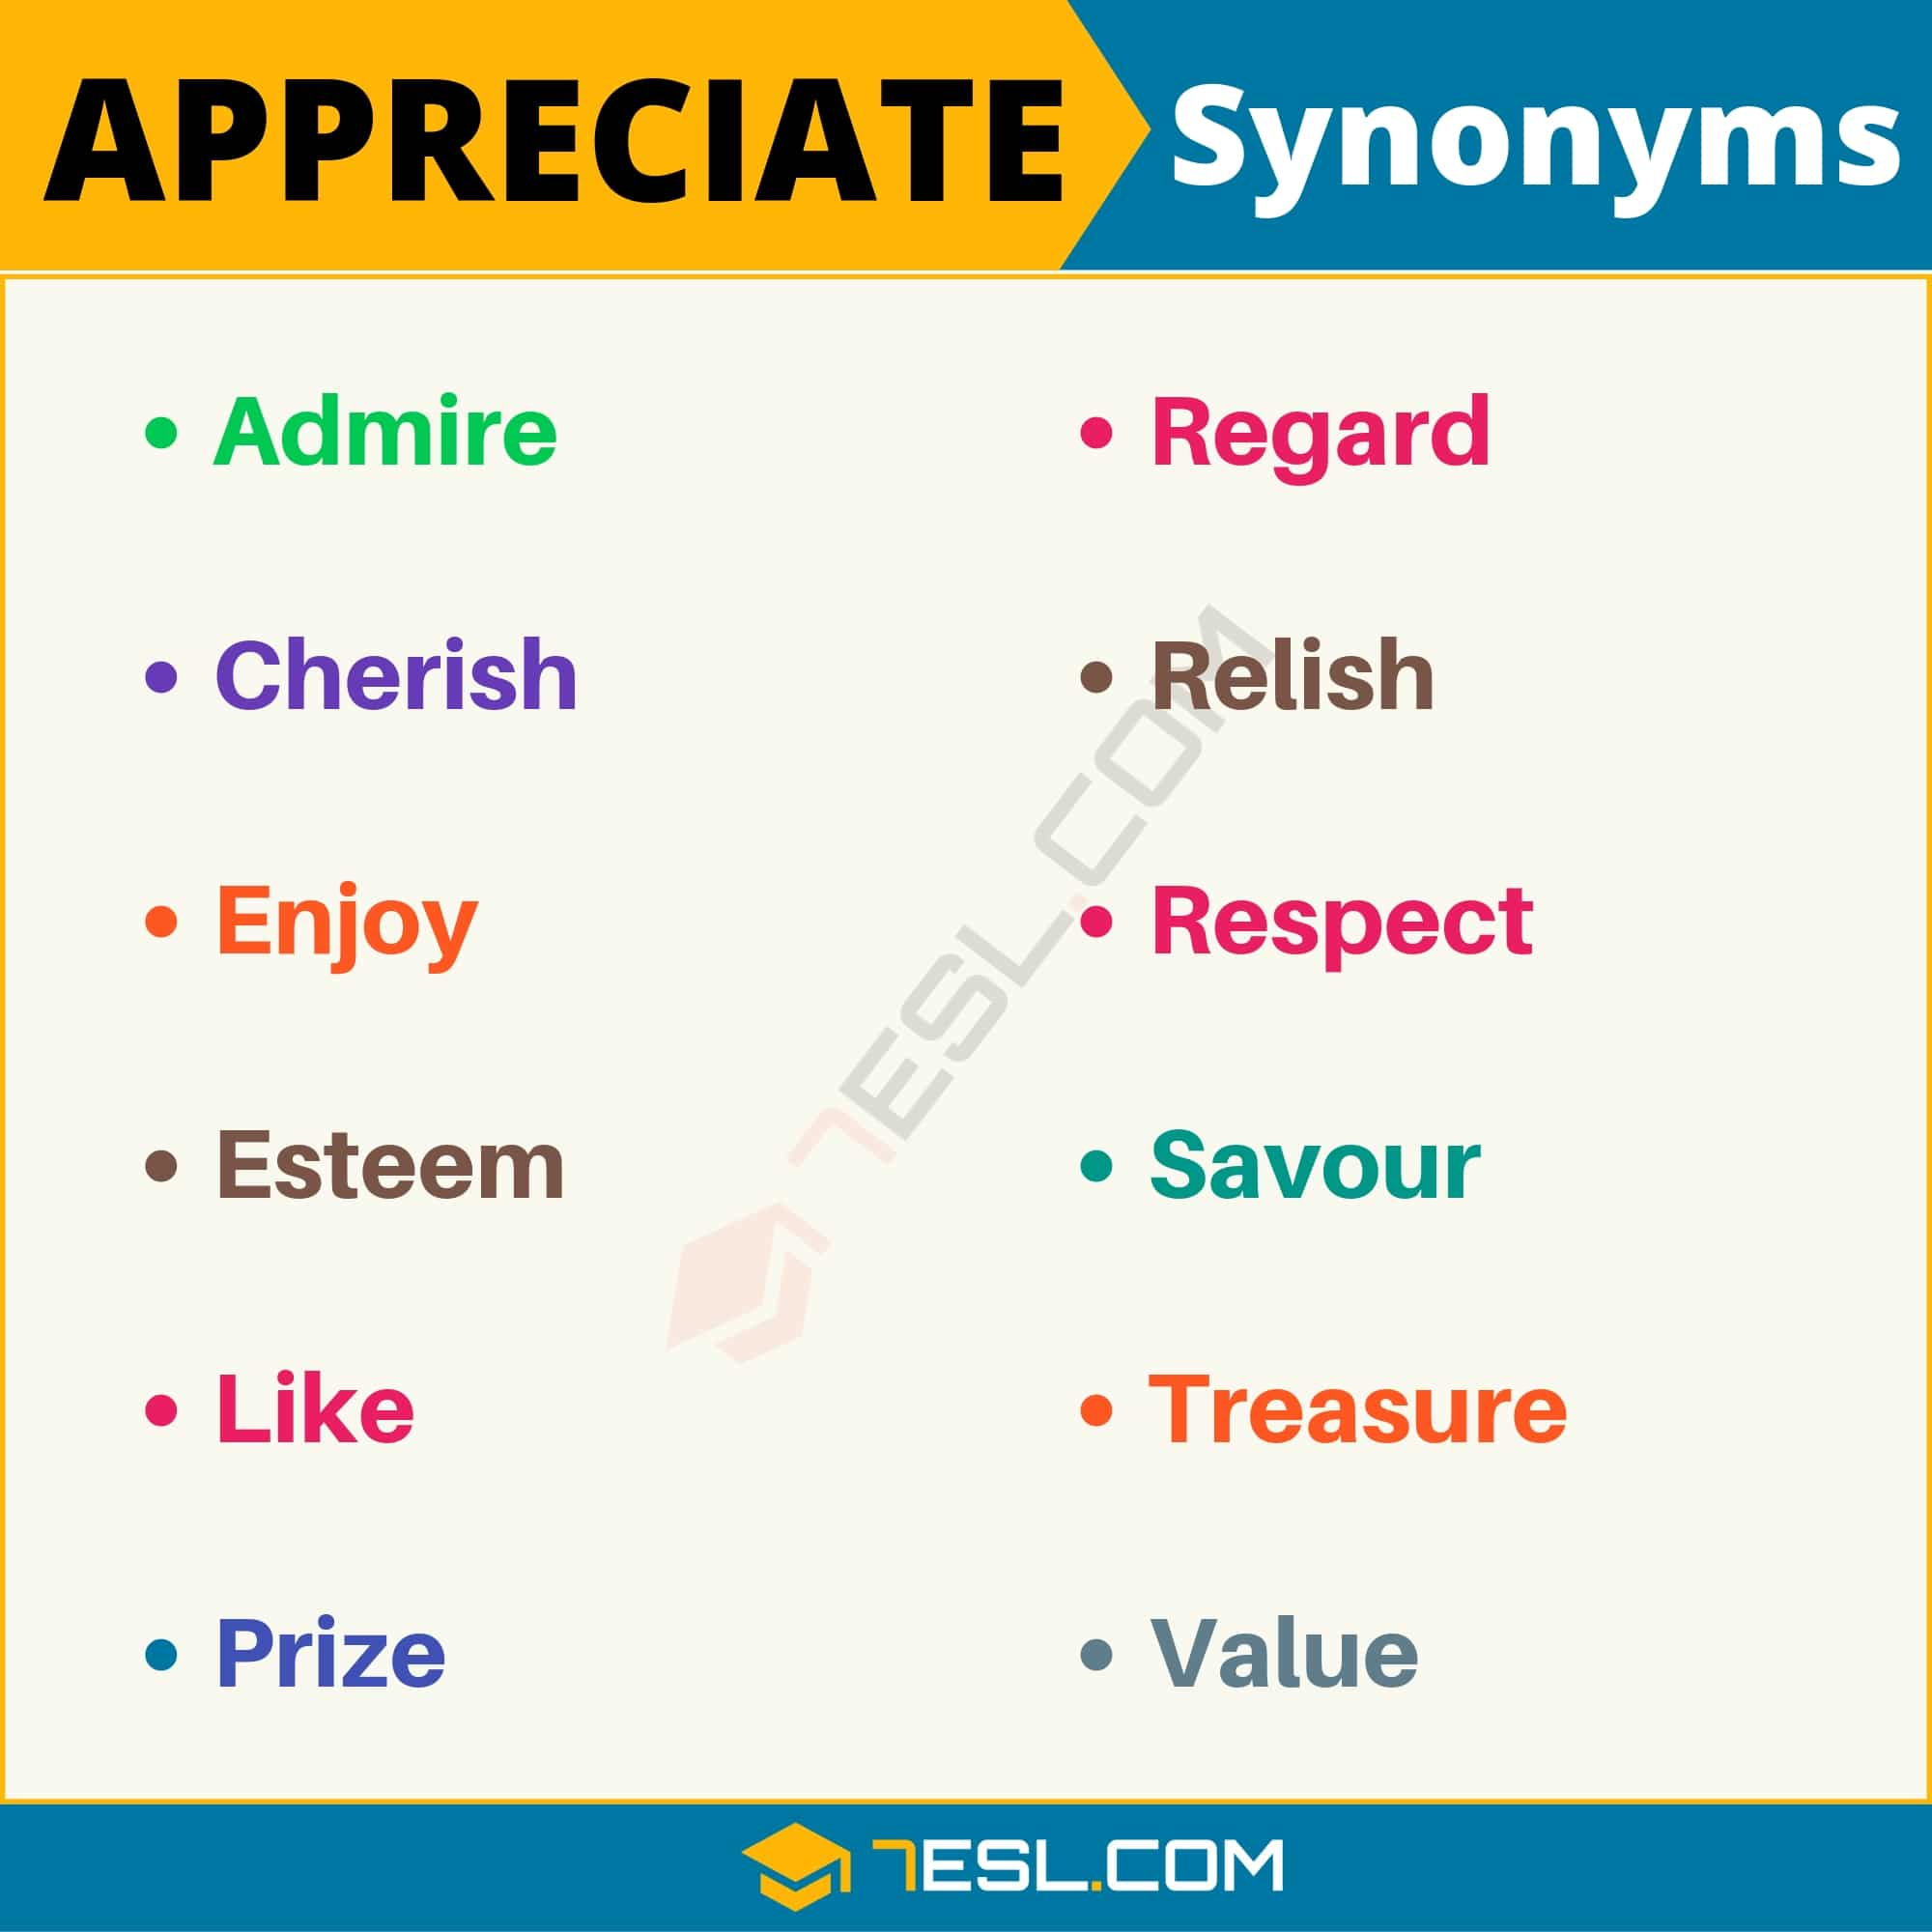 APPRECIATE Synonym: List of 12 Synonyms for Appreciate with Useful Examples